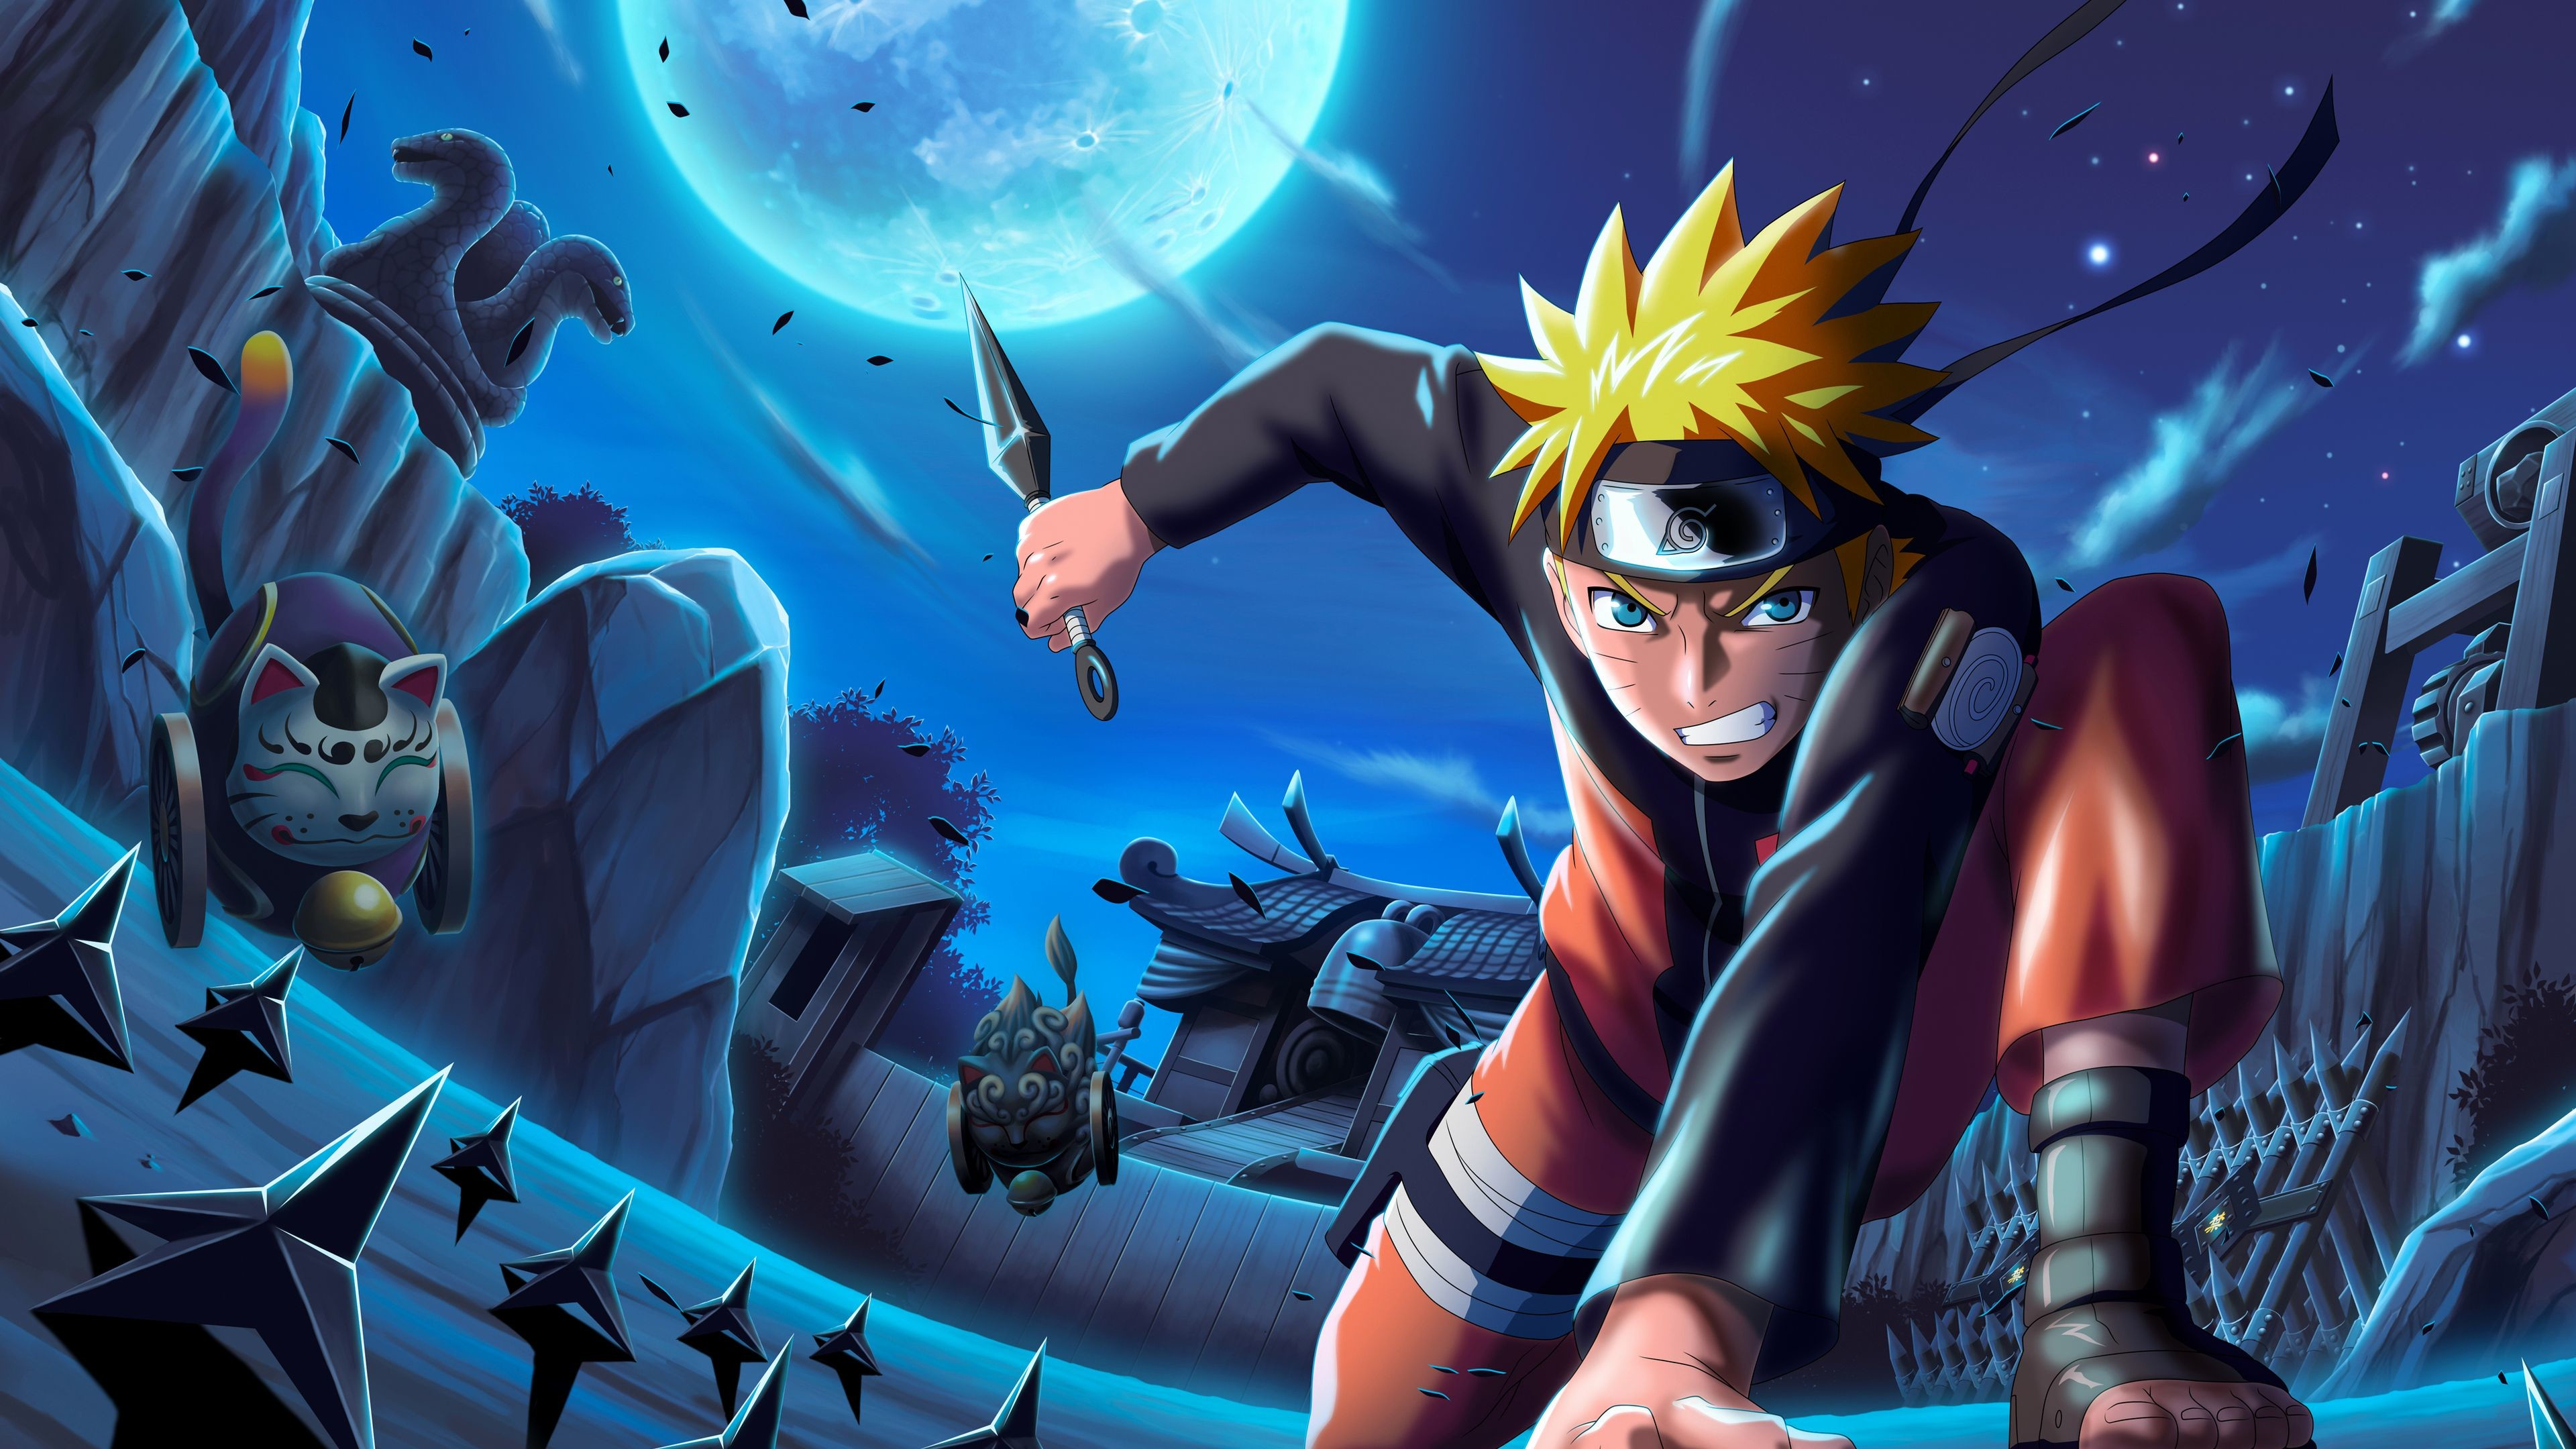 Wallpaper Desktop Naruto